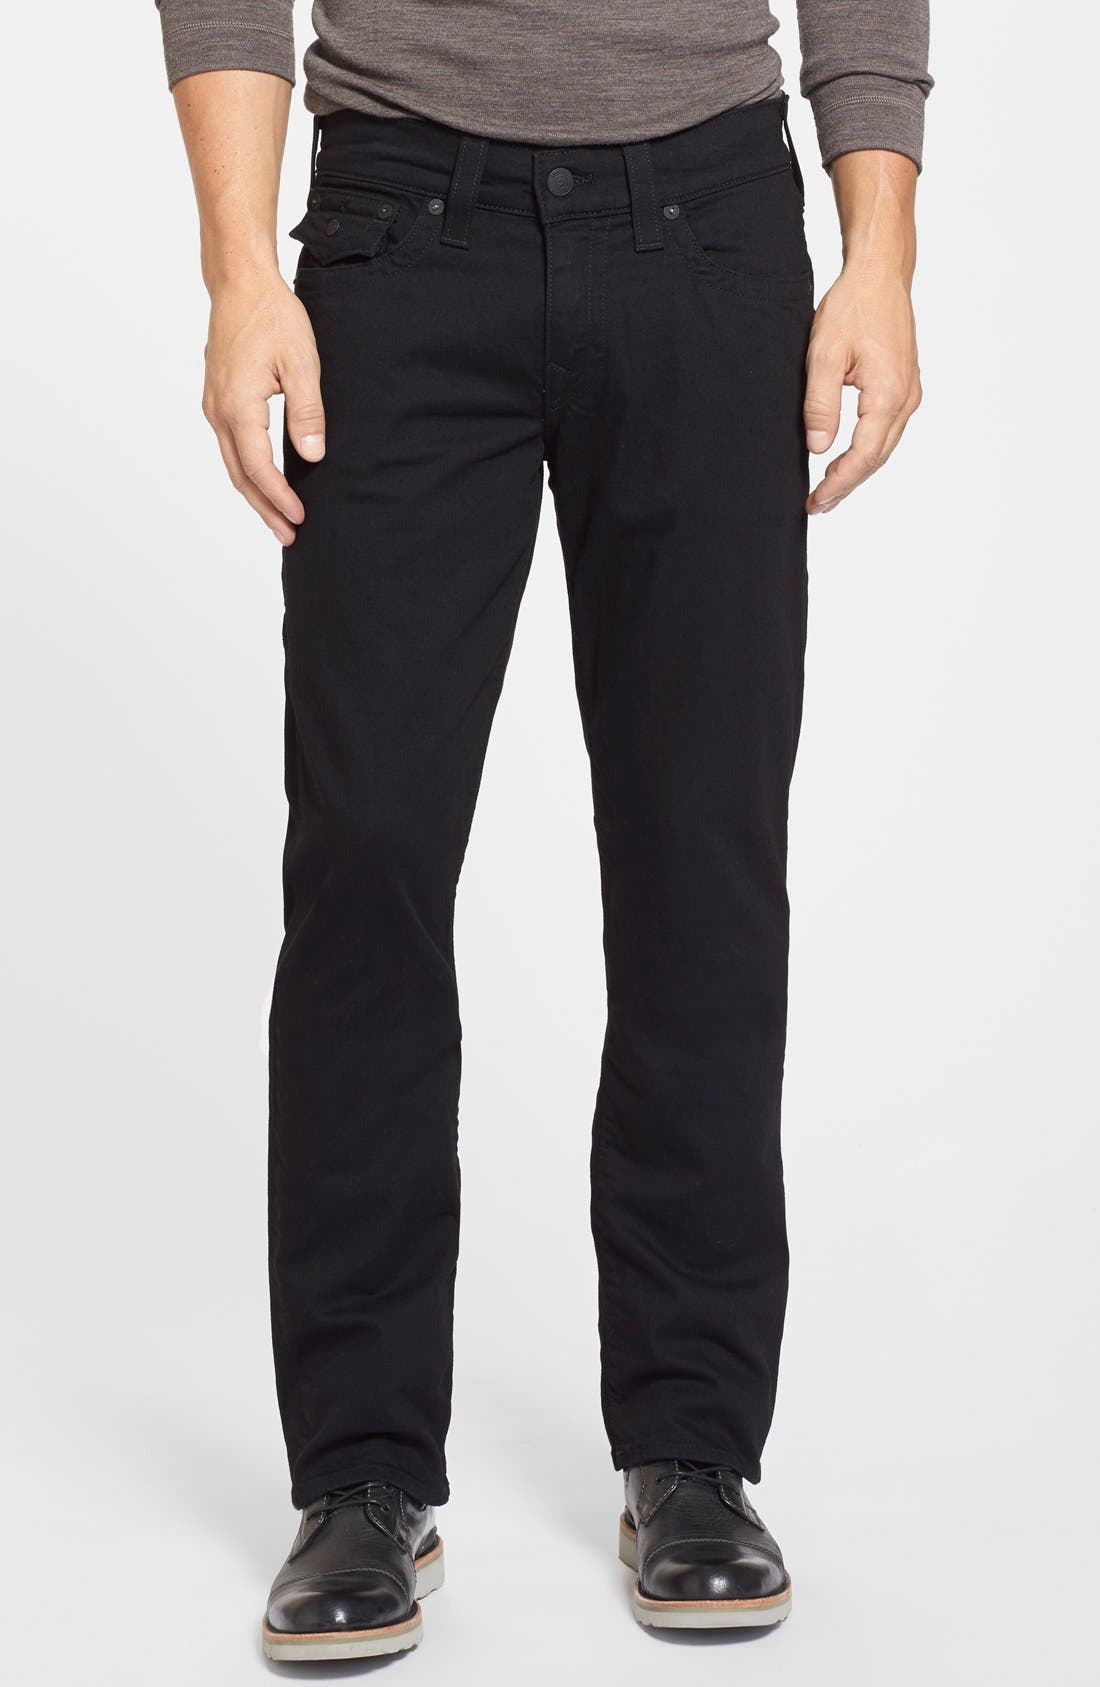 Main Image - True Religion Brand Jeans Ricky Relaxed Fit Jeans (Midnight Black)